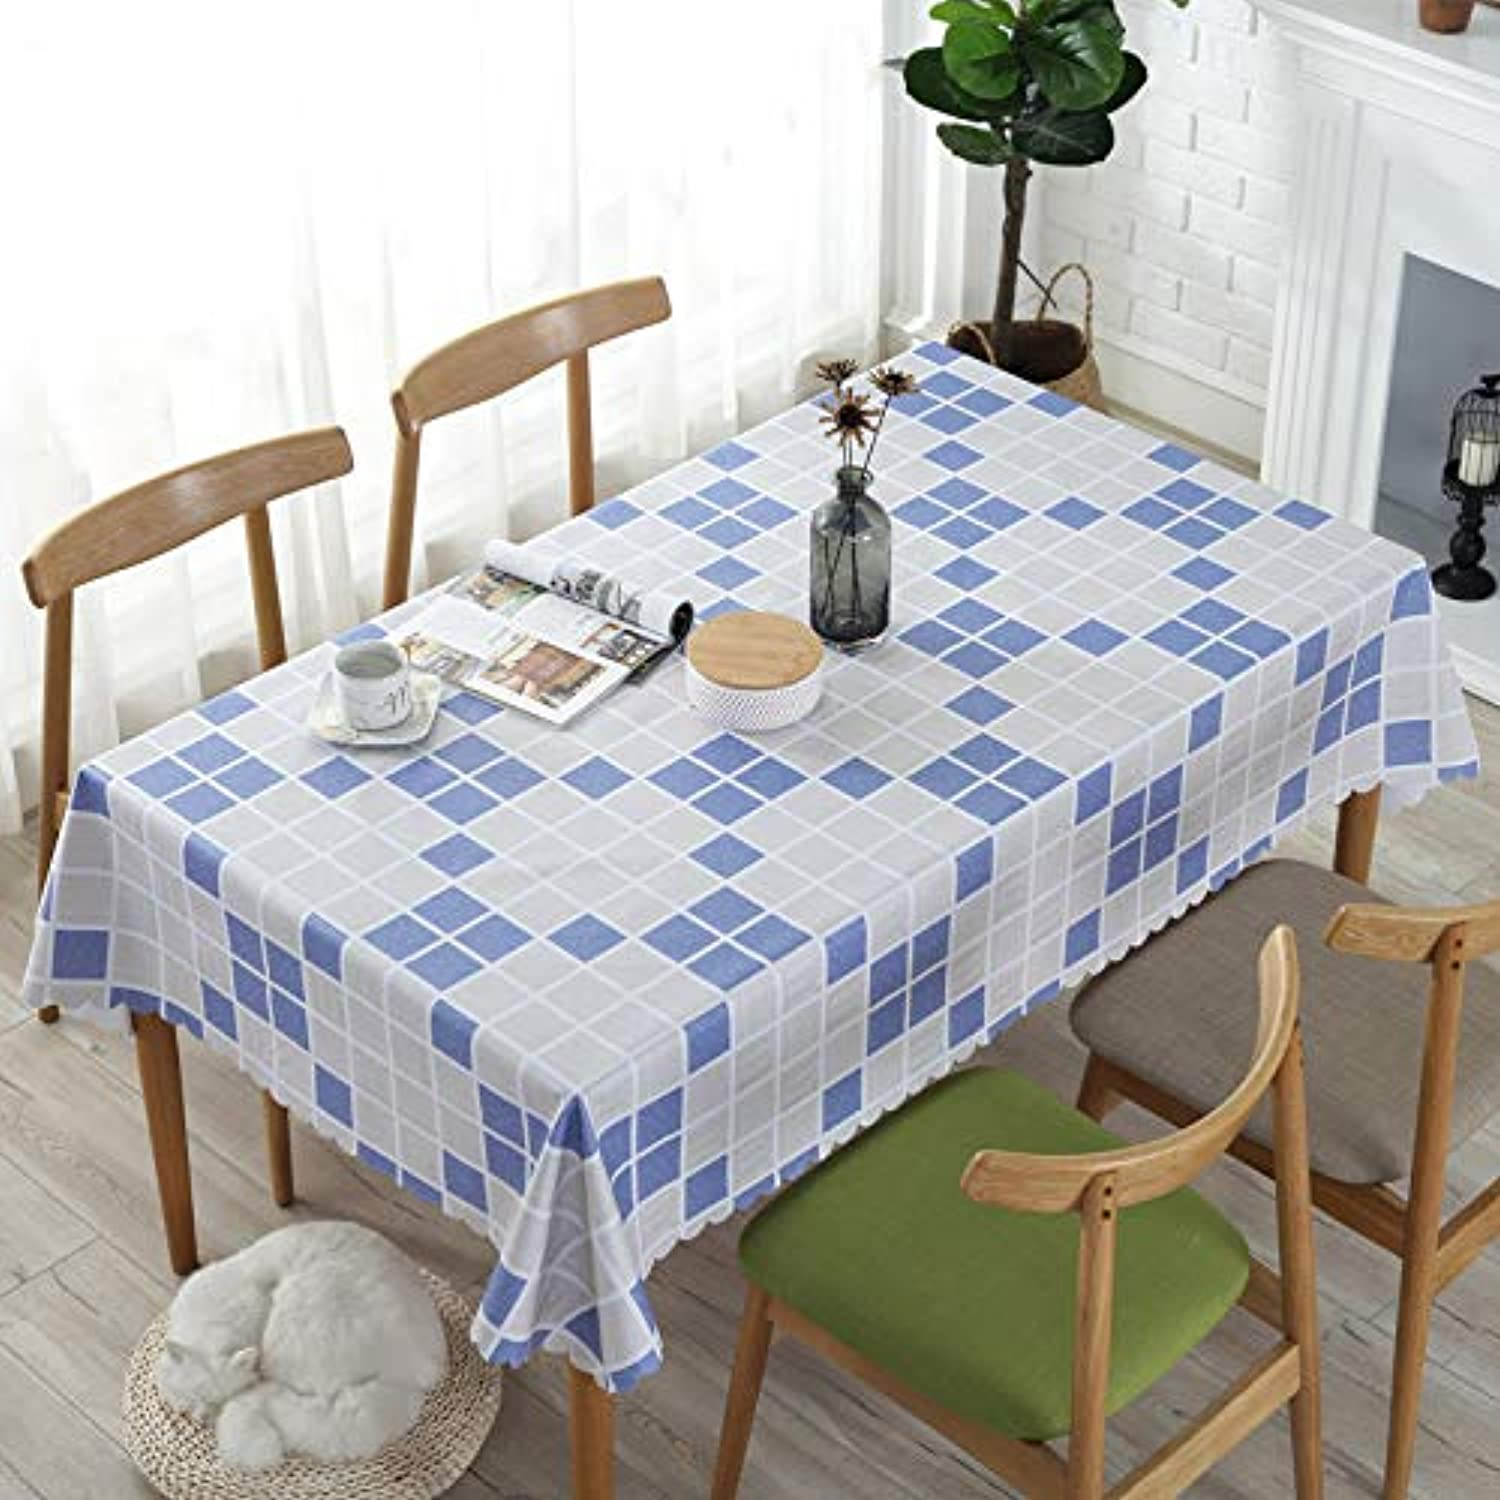 Creek Ywh European coffee table dining tablecloth tablecloth fabric plastic tablecloth pad waterproof antiscalding oilproof rectangular simple, mosaic bluee, 110160